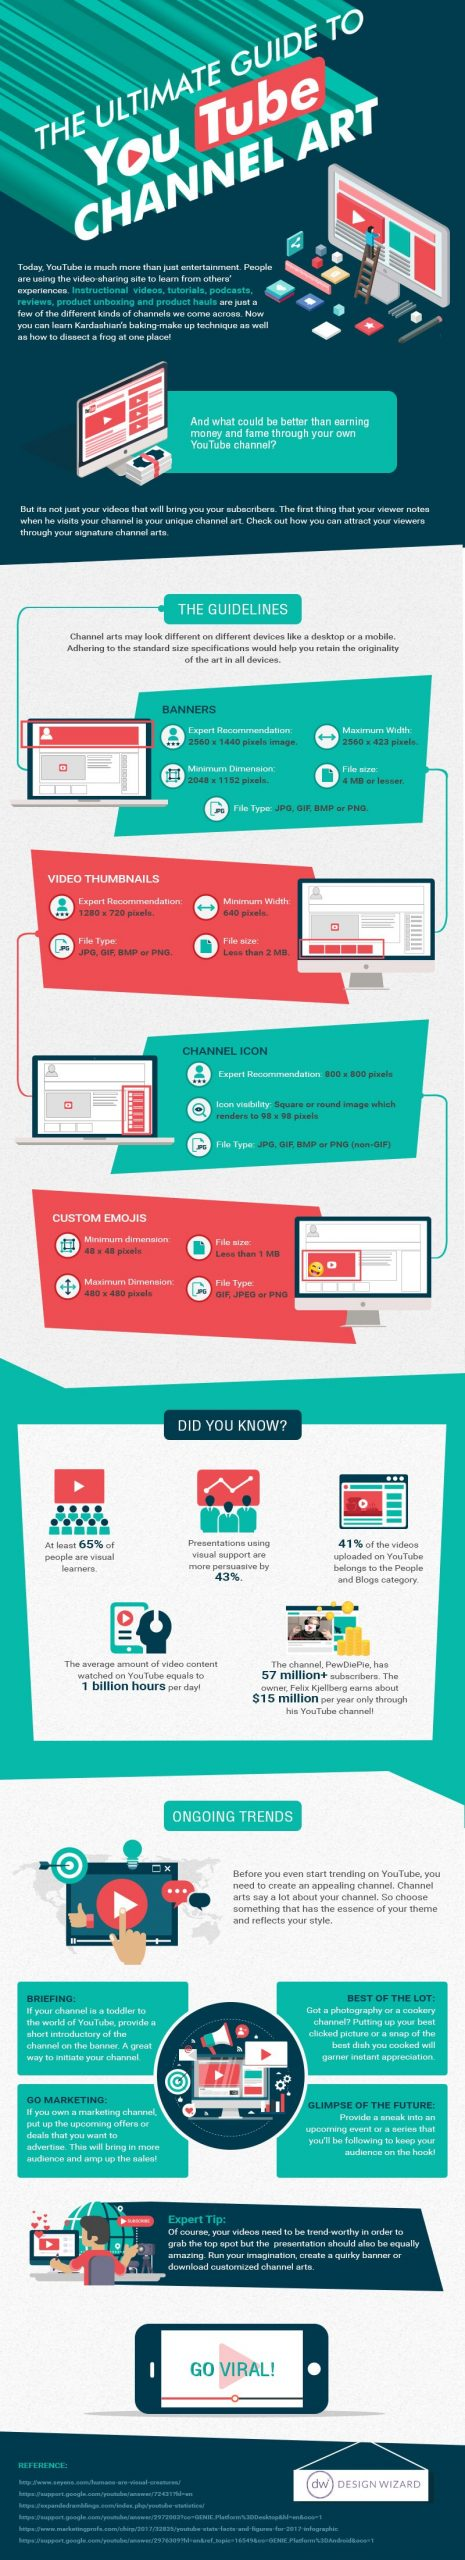 YouTube Channel Art Infographic Compressed